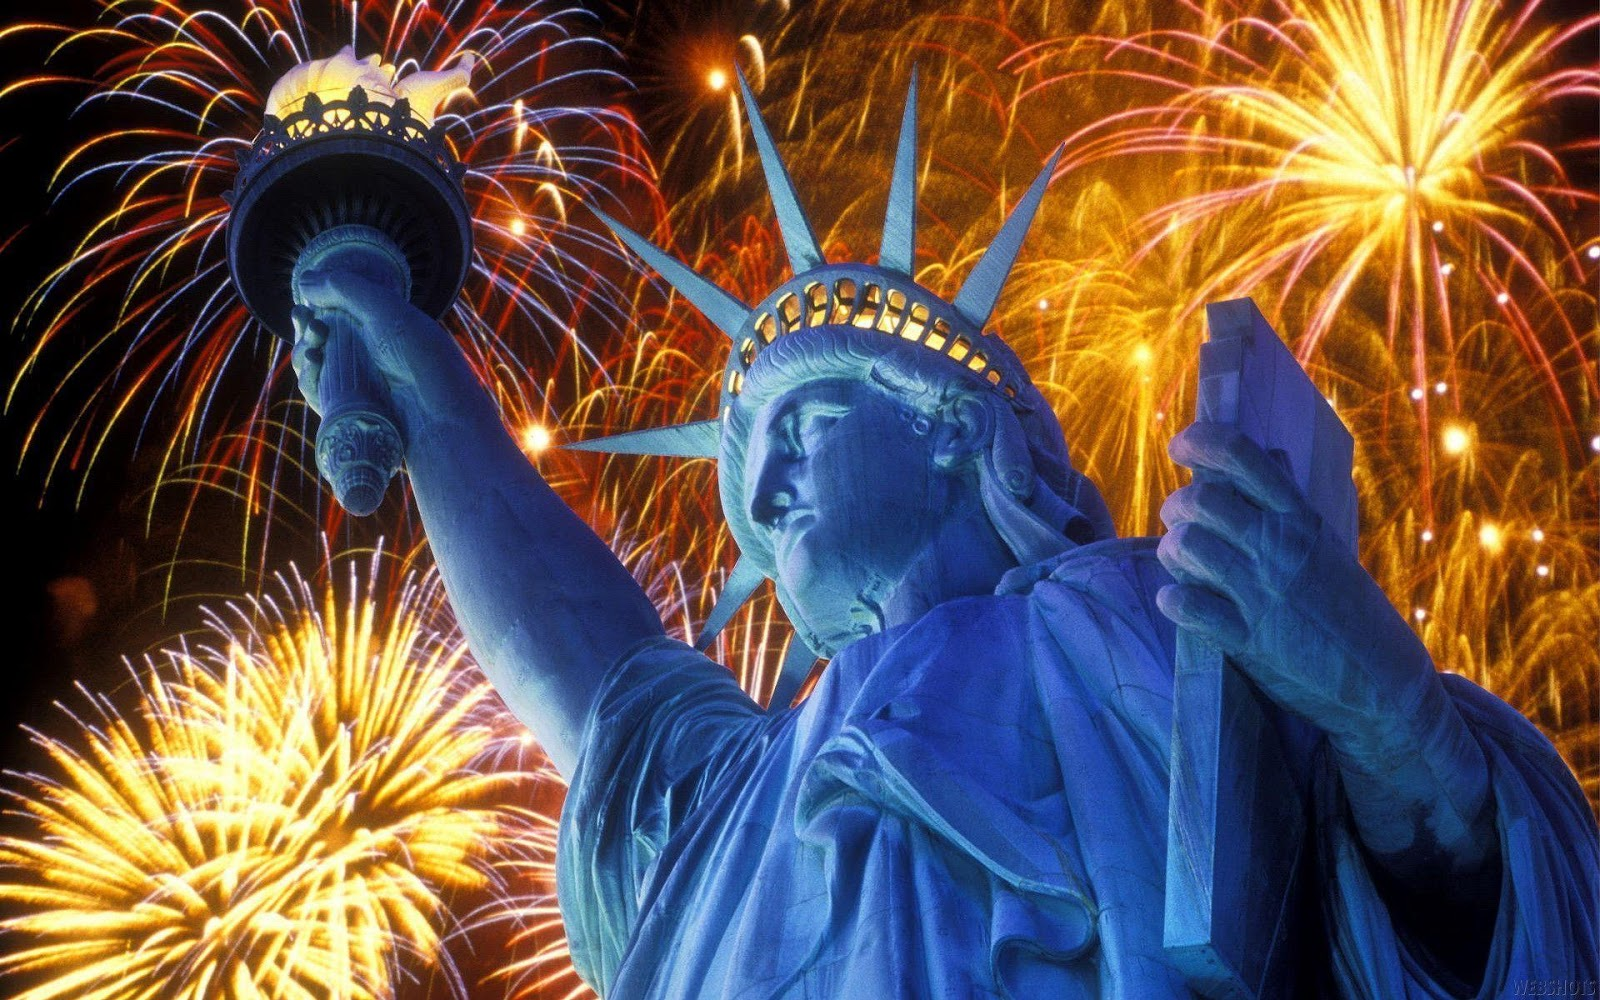 HD Wallpapers 4th of July Fireworks in Statue of Liberty Exclusive